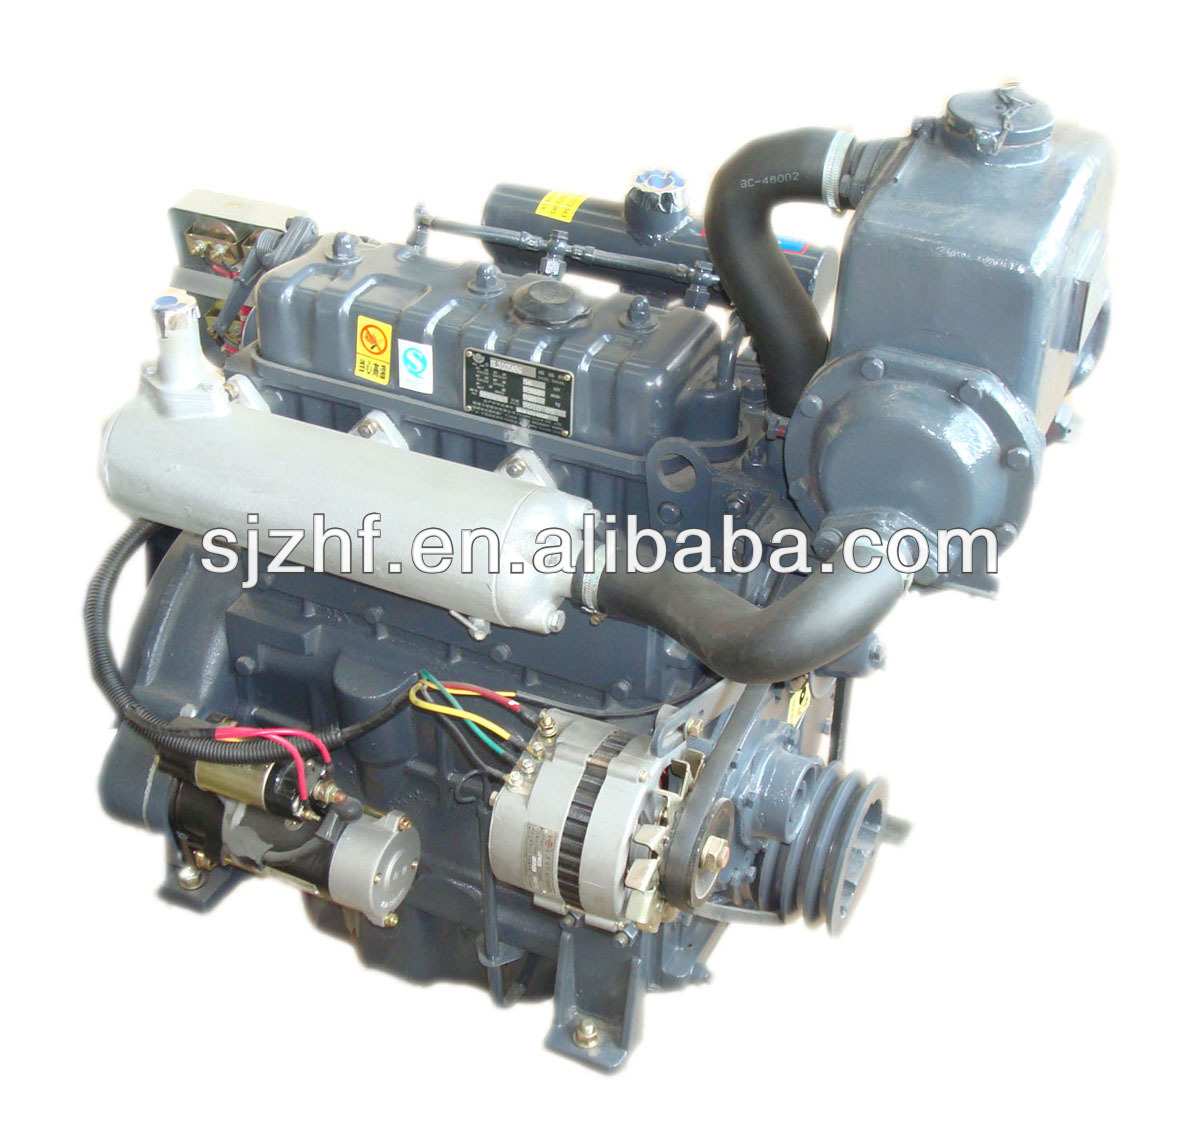 Sl3105abc Small Marine Diesel Engine - Buy Small Marine ...